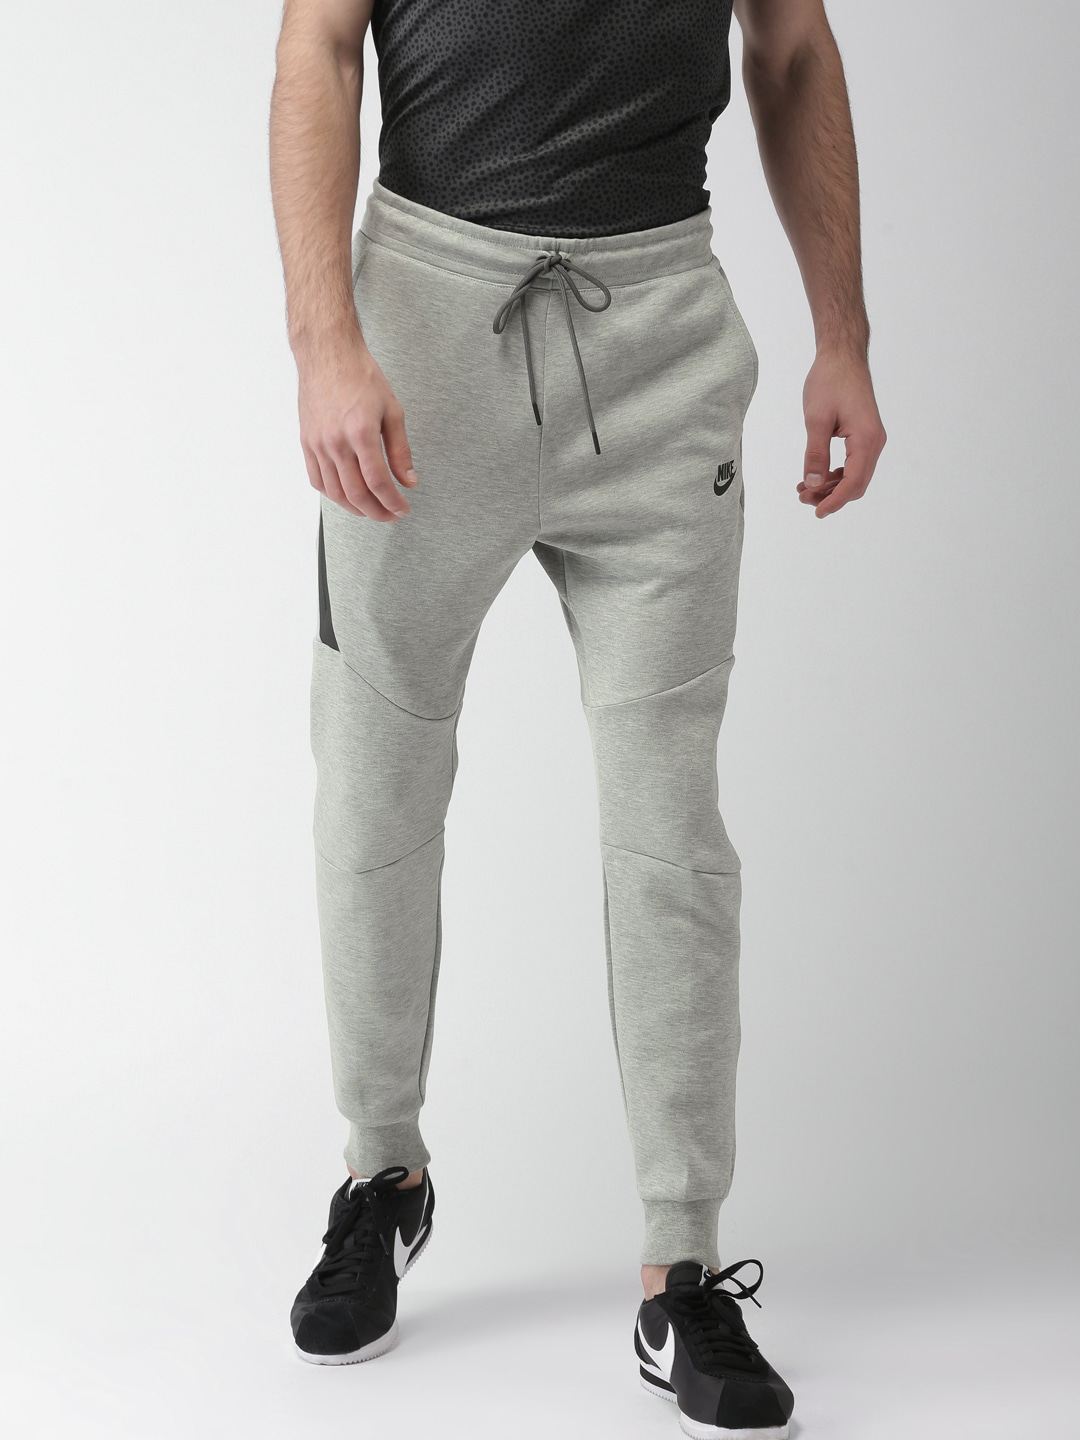 a87c04b619eb Nike Jogger - Buy Nike Jogger online in India